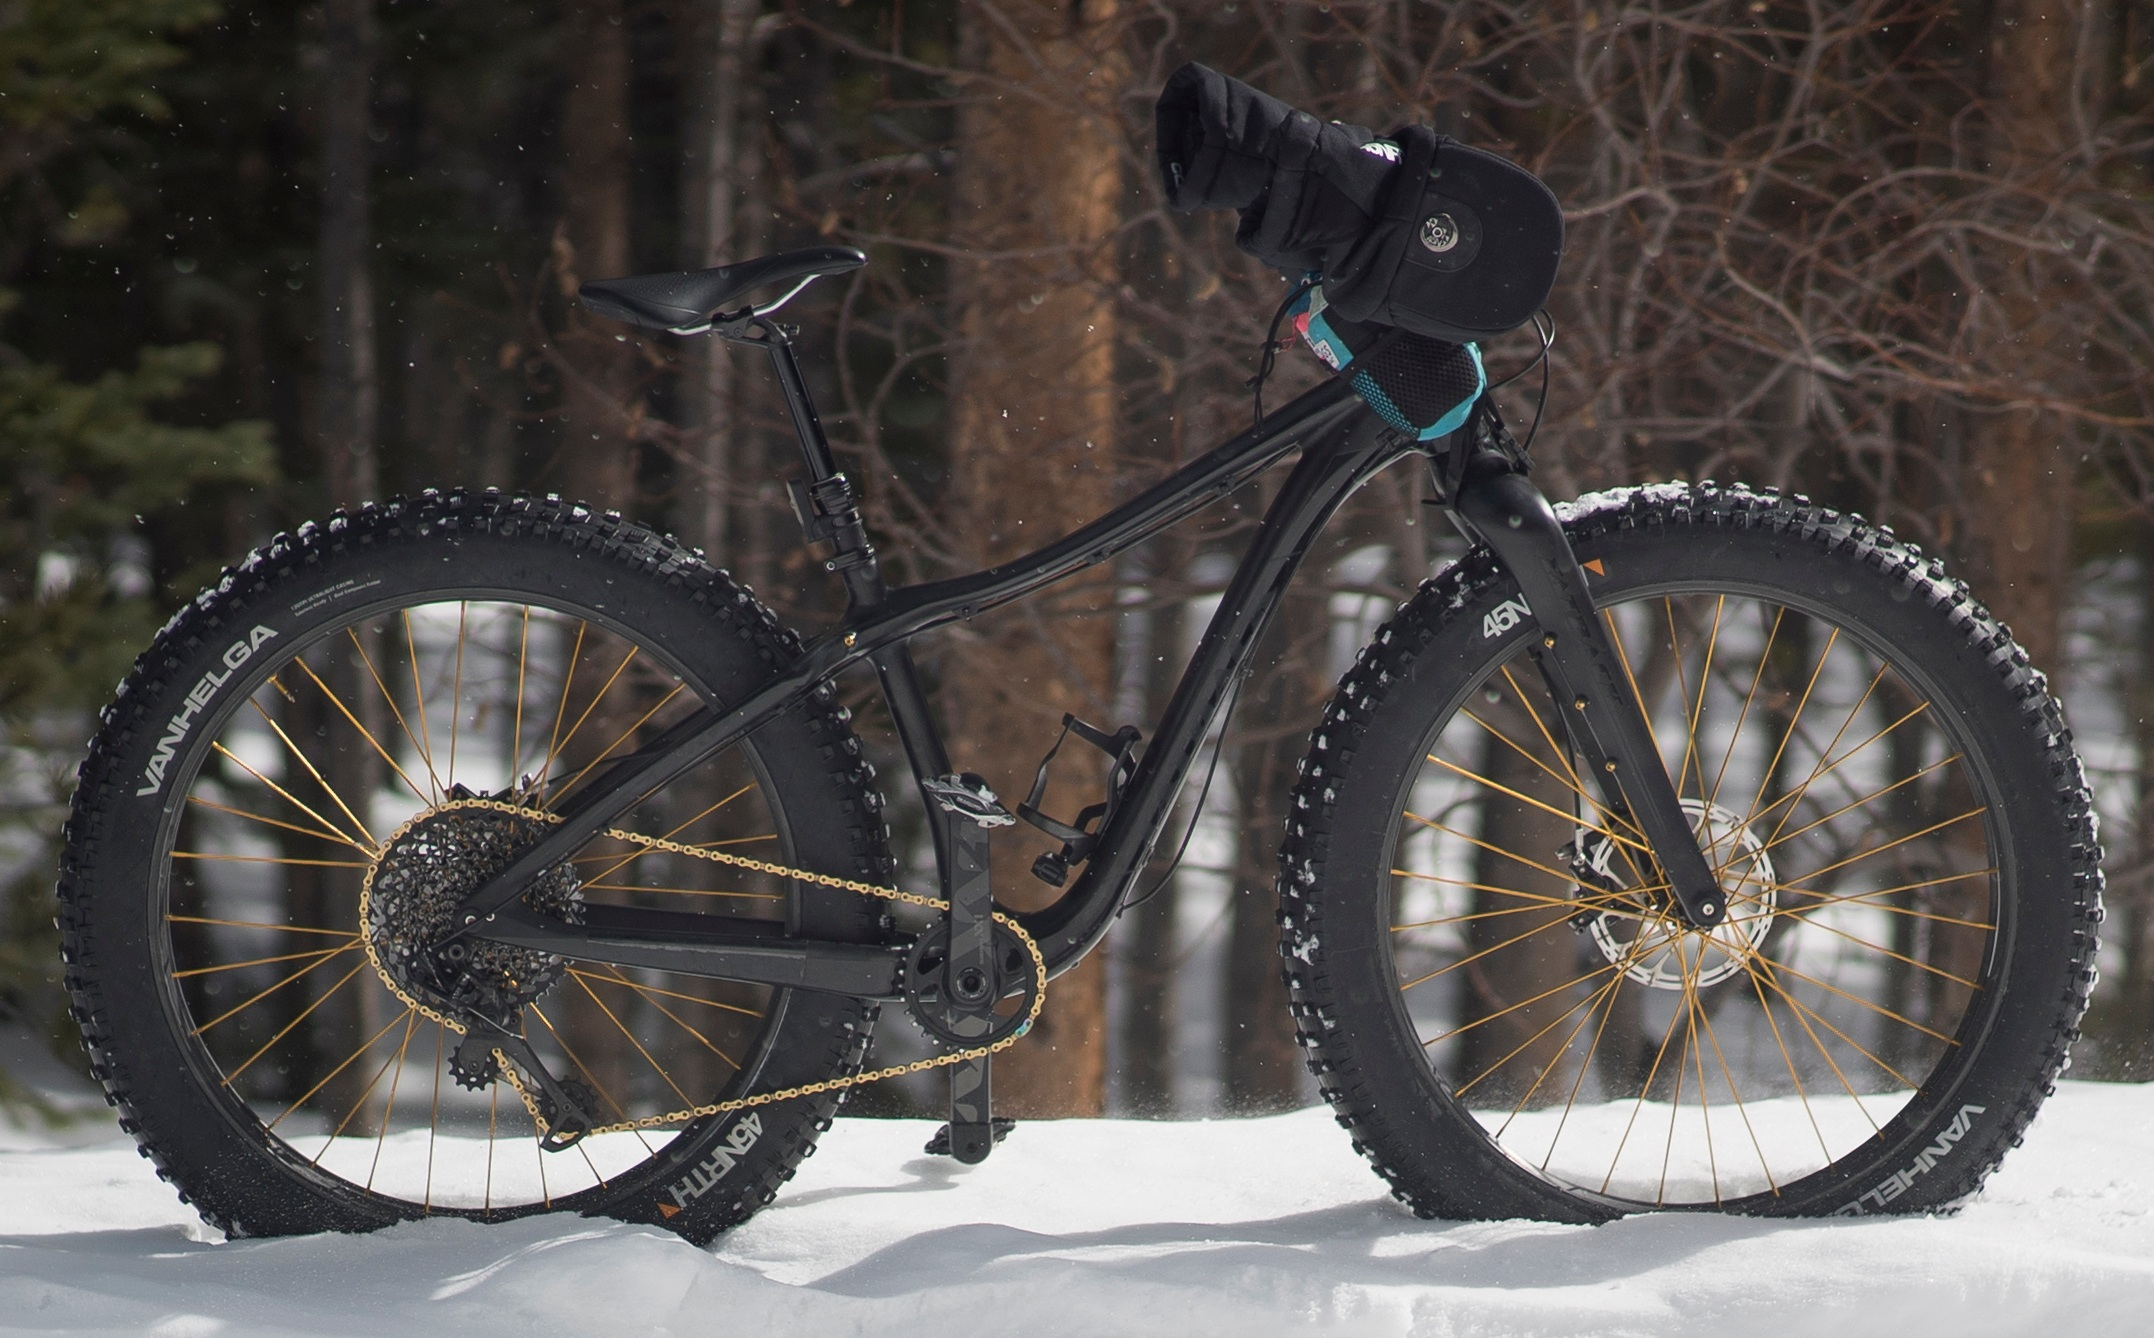 2018 FatBack Corvus FLT - The Corvus FLT is a snow expedition bike, built to handle the gnarliest of conditions in the backcountry of Alaska. While I will likely never put her to the test in the conditions she was made for, the Corvus remains the most nimble, easy-to-handle fatbike I've ever ridden. I've decked this bike out to be race-shreddy machine. I call her 'Stardust.'